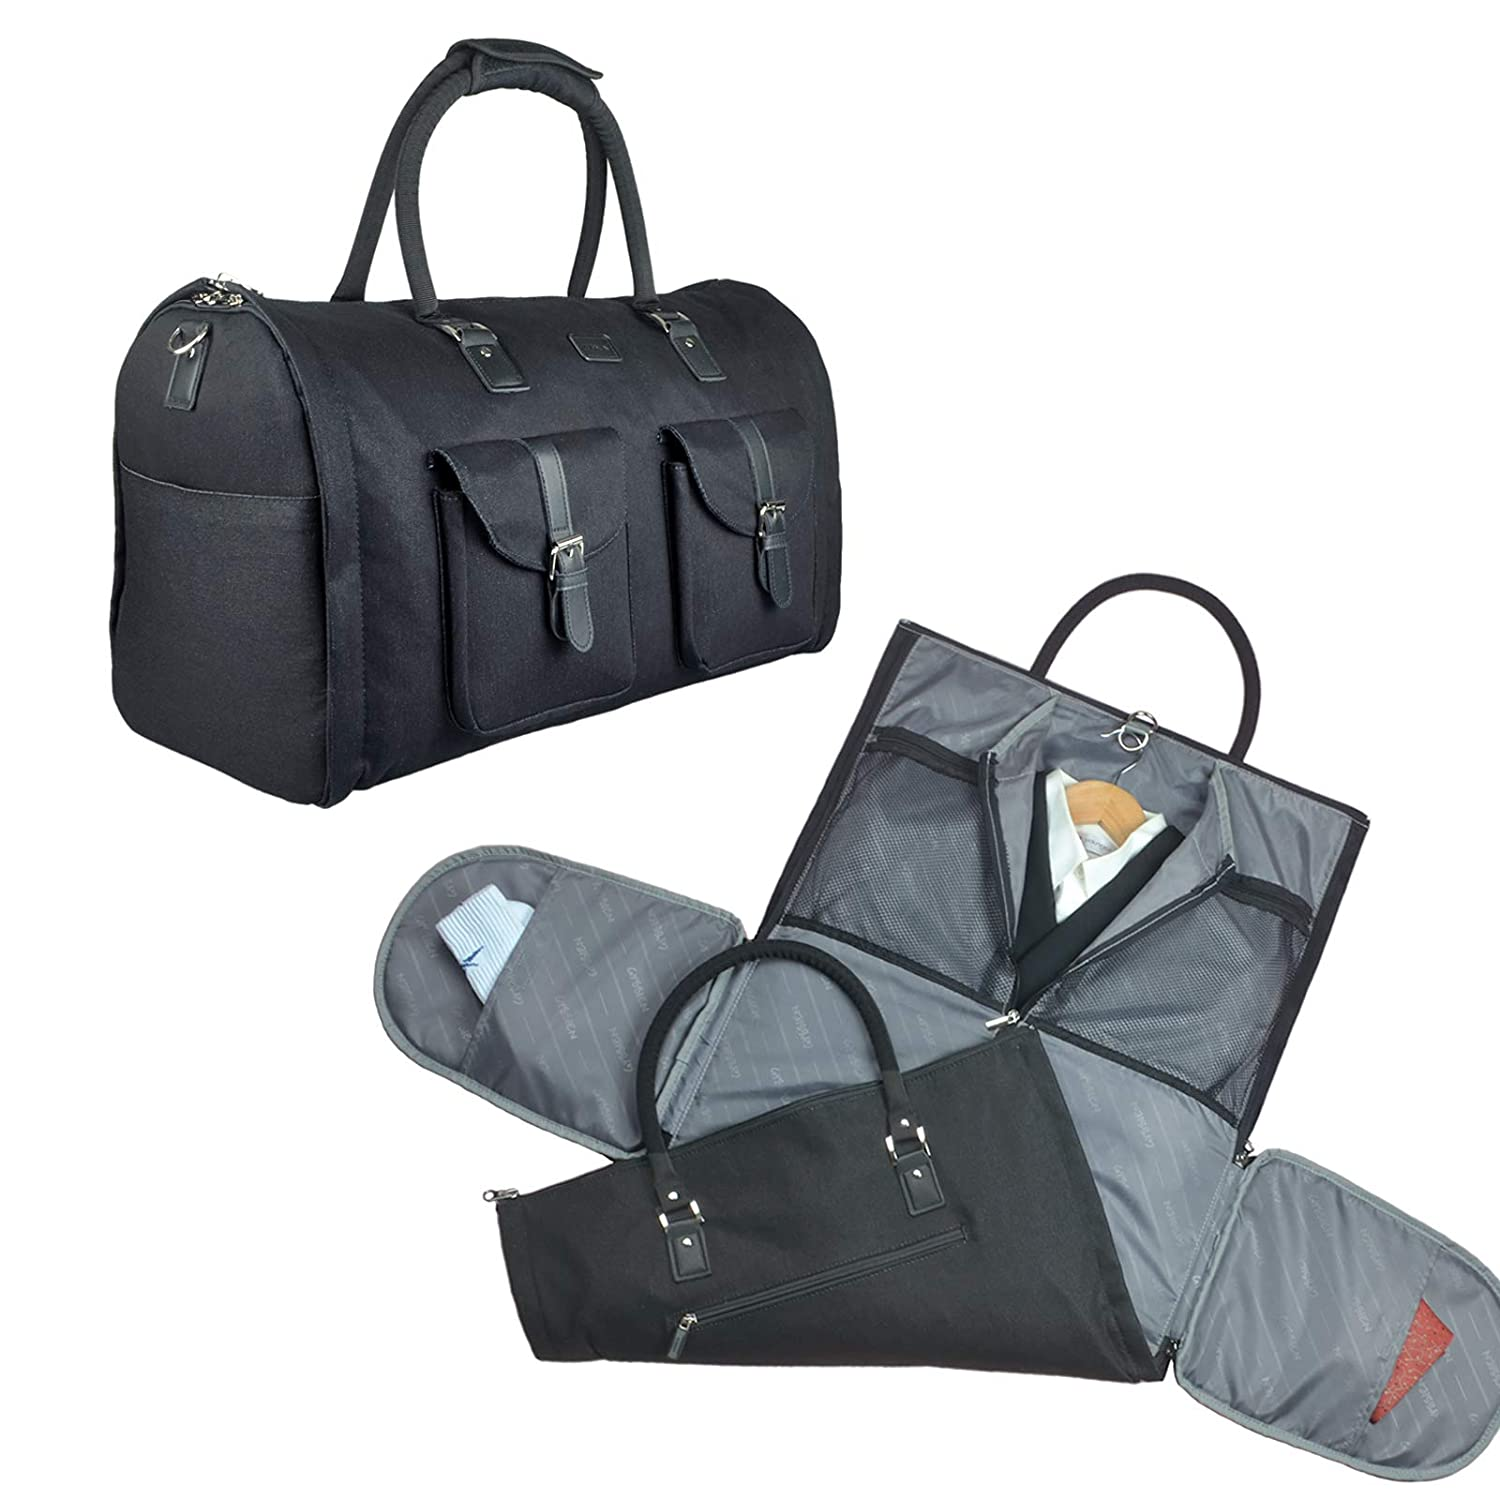 b43599fa3 Amazon.com | 2 in 1 Convertible Travel Garment Bag Carry On Suit Bag  Luggage Duffel | Garment Bags